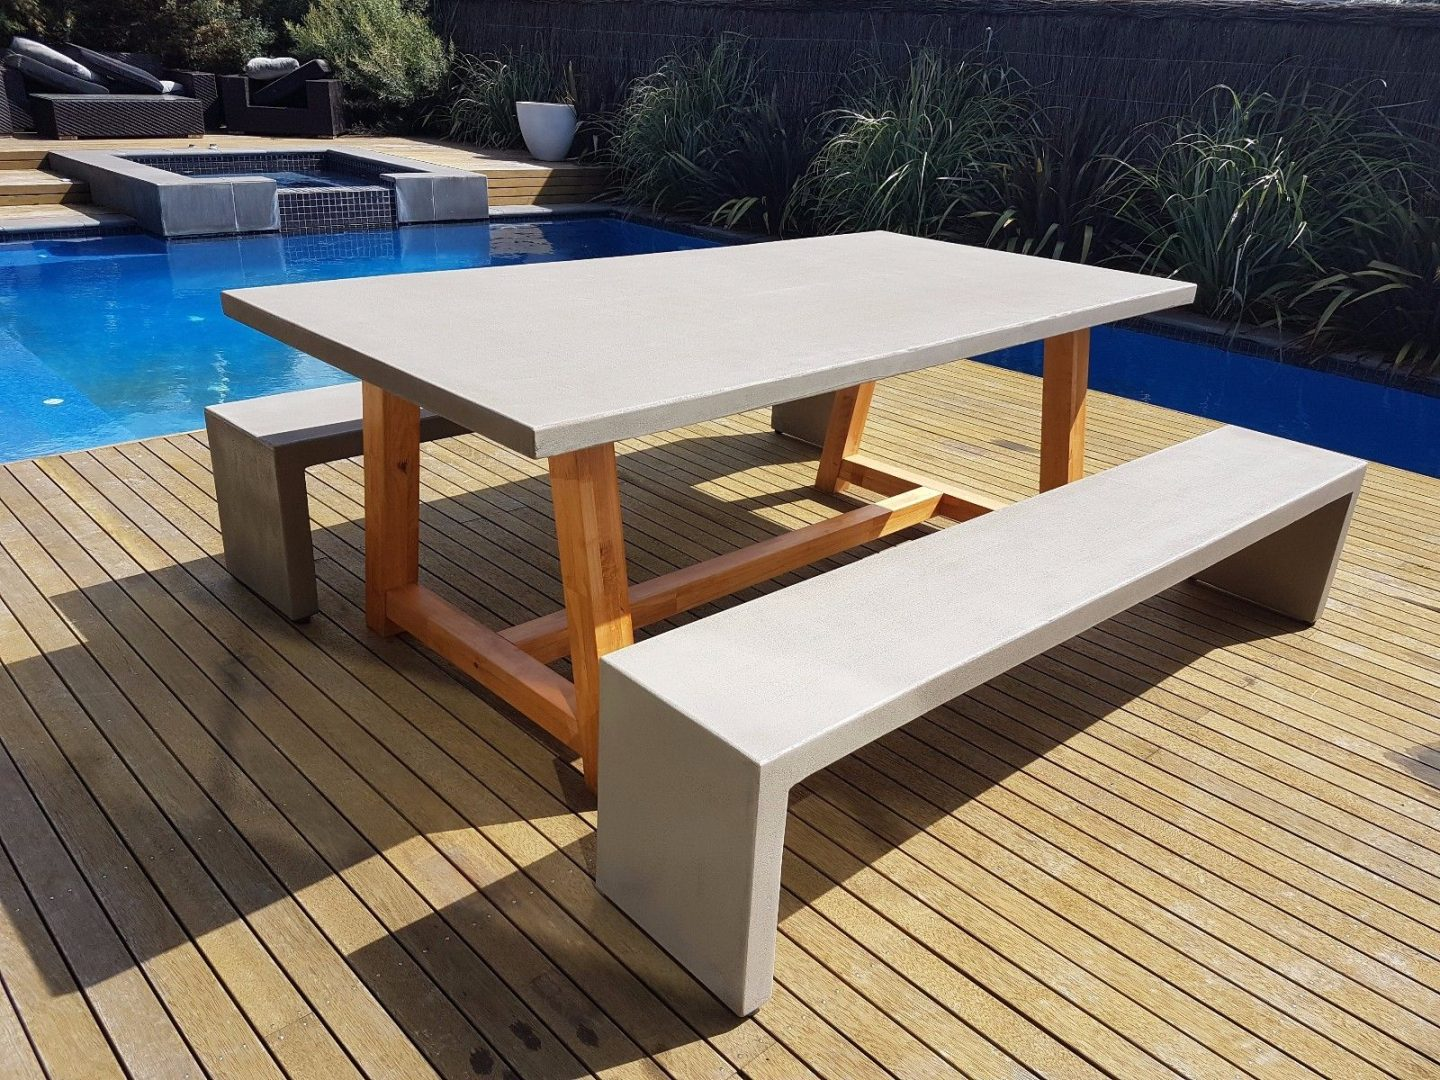 Outdoor furniture 2mt x 1mt grc concrete table 2 x for Outdoor garden furniture